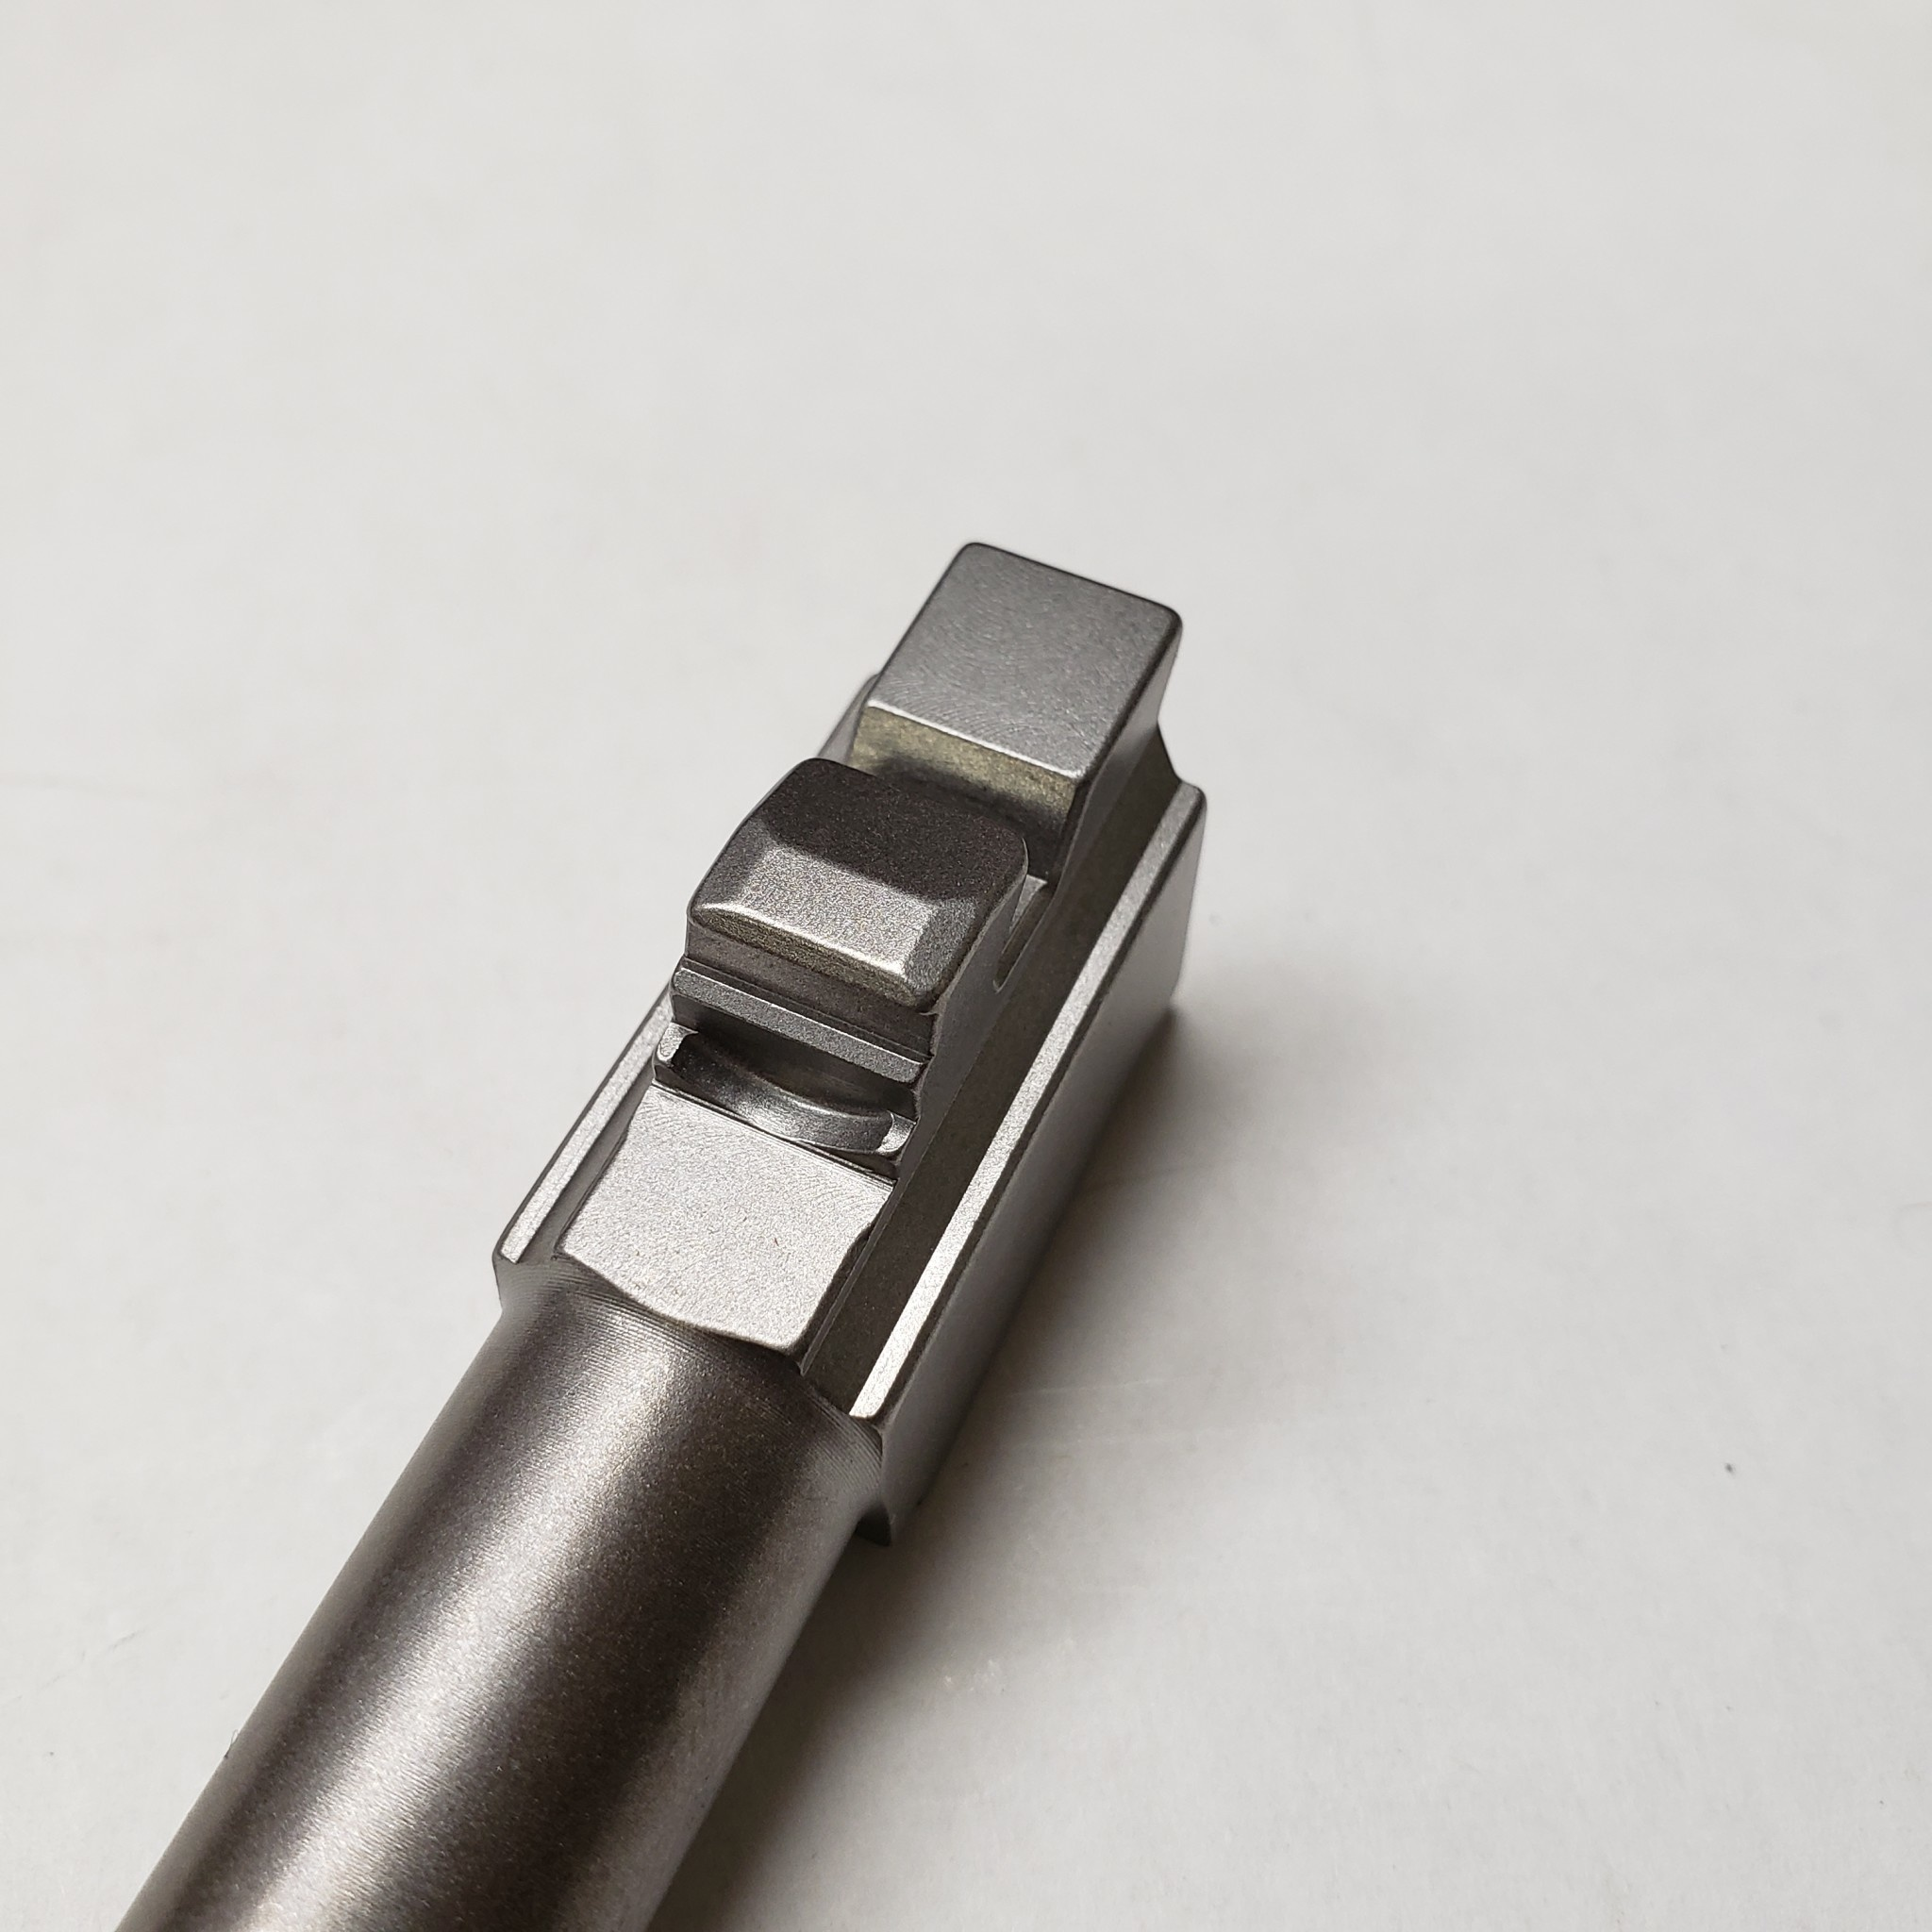 House FU G19 9mm Barrel Stainless